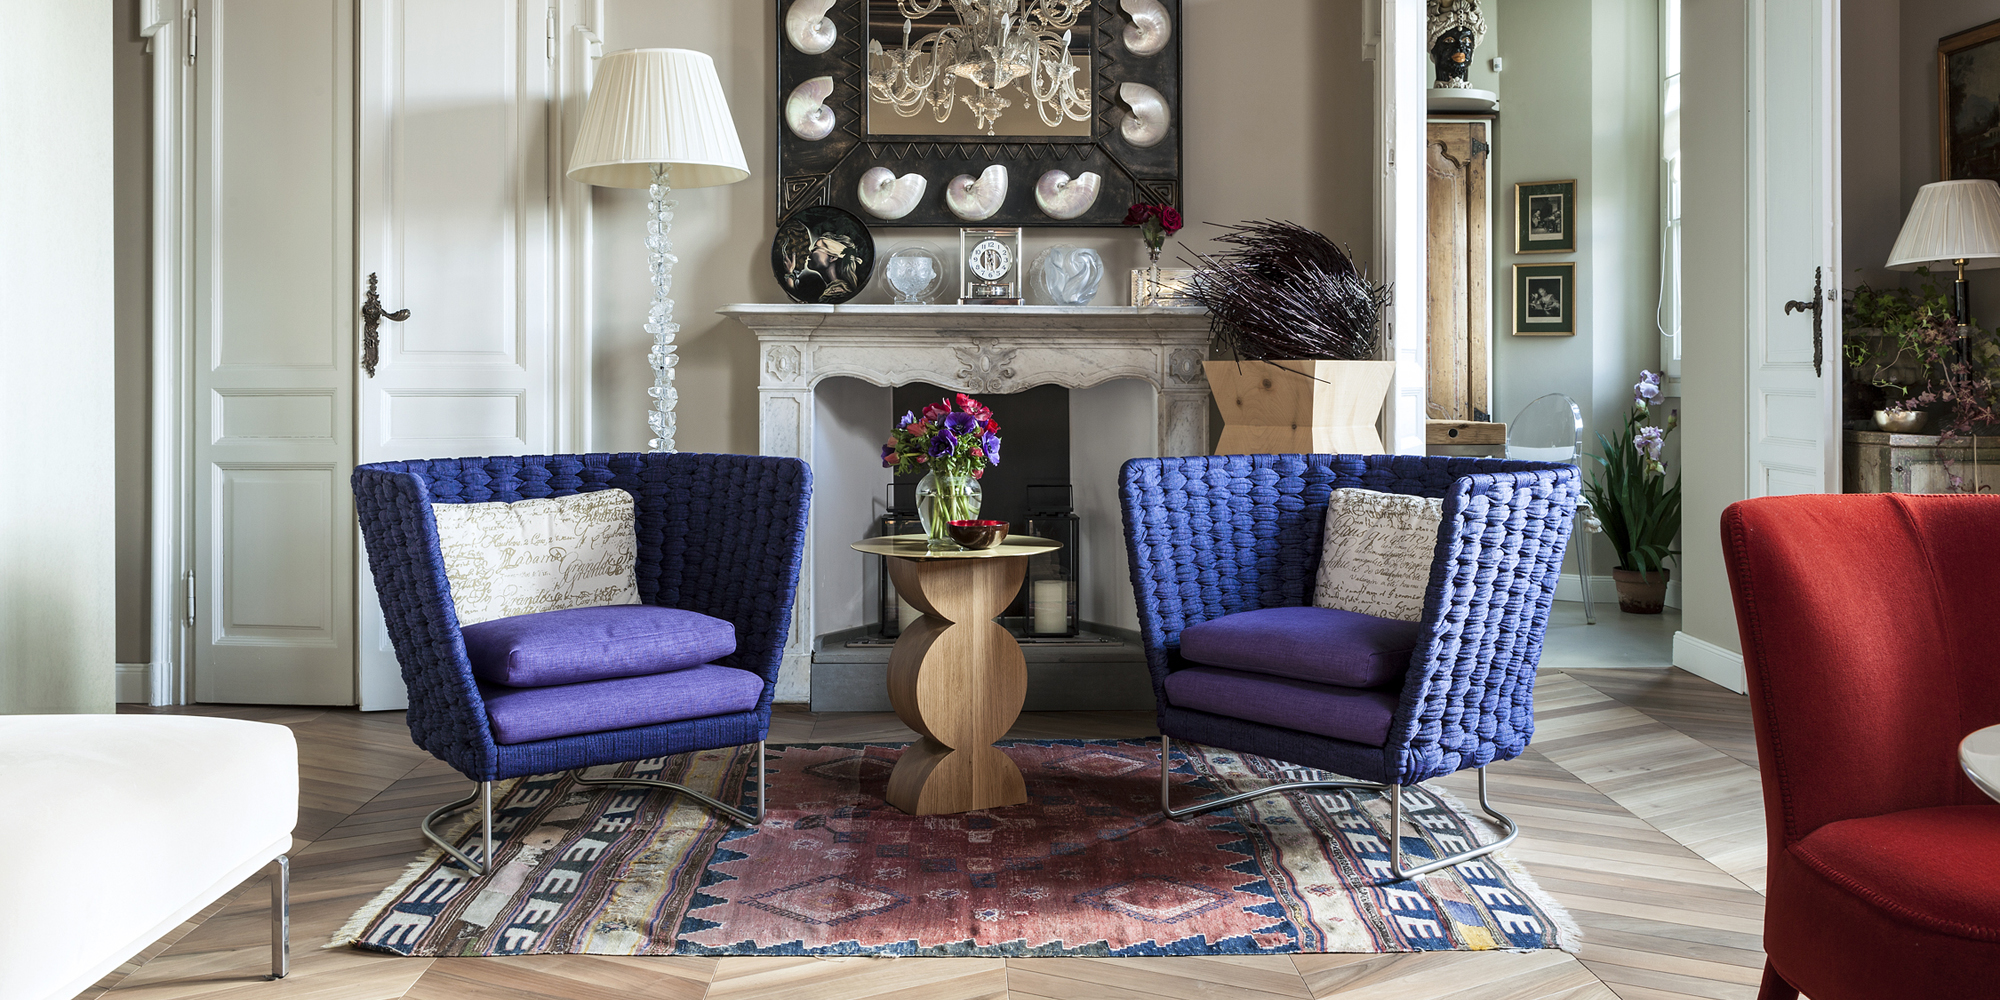 Chic_Classic_Home